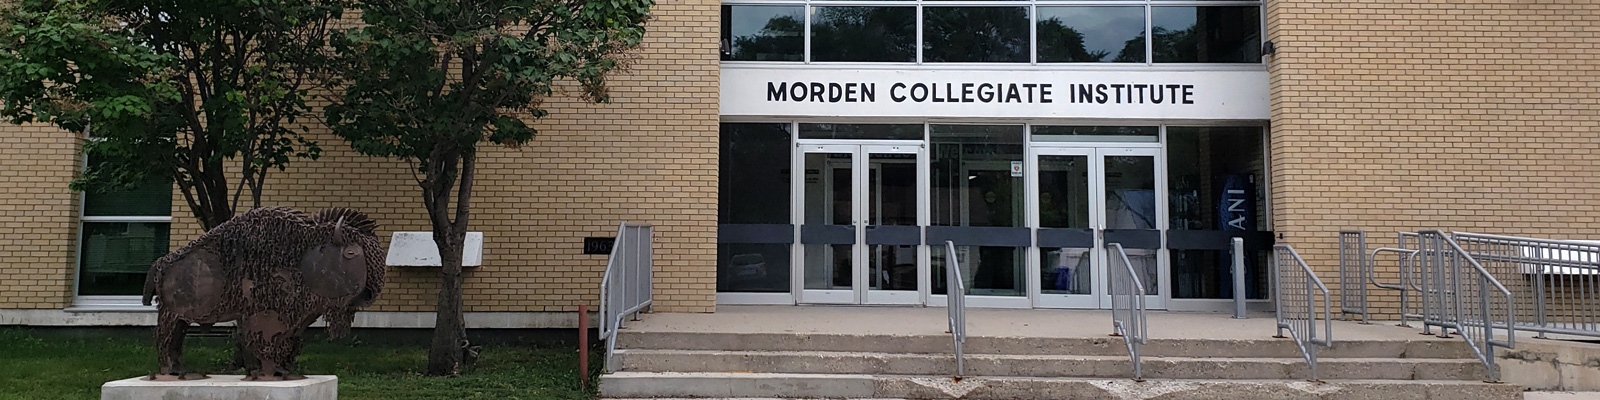 Morden Collegiate Institute